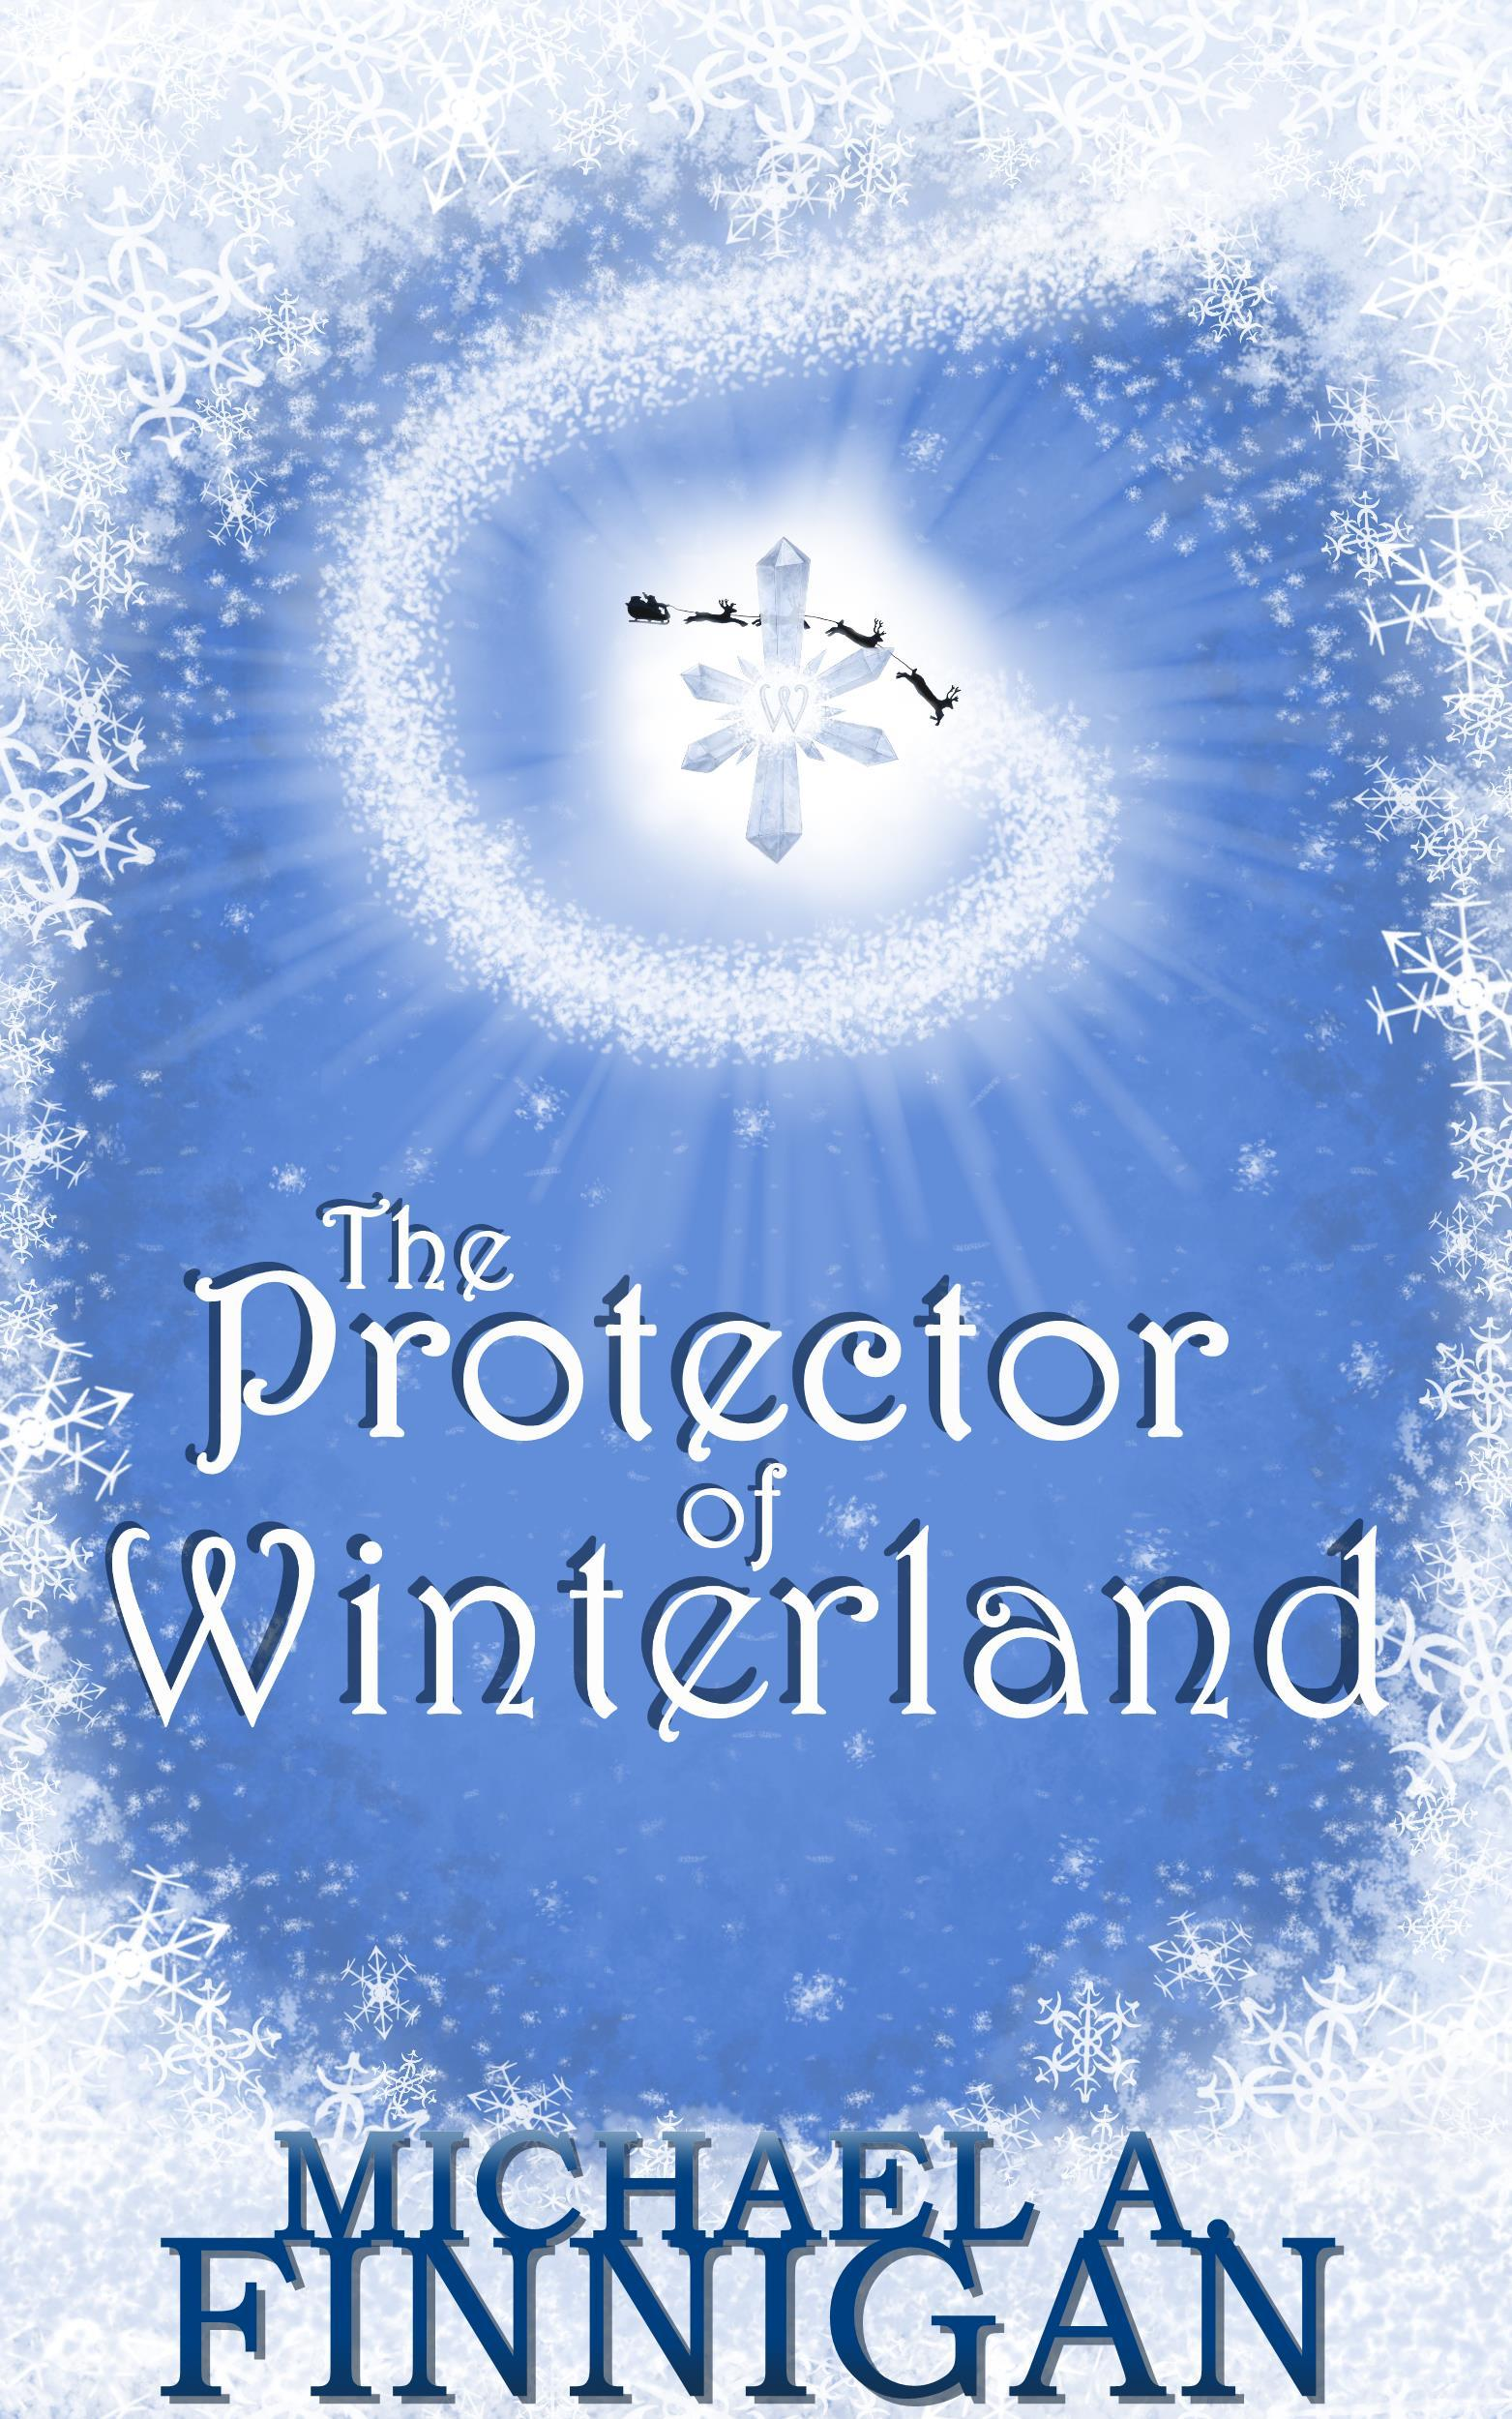 The Protector of Winterland Michael A. Finnigan